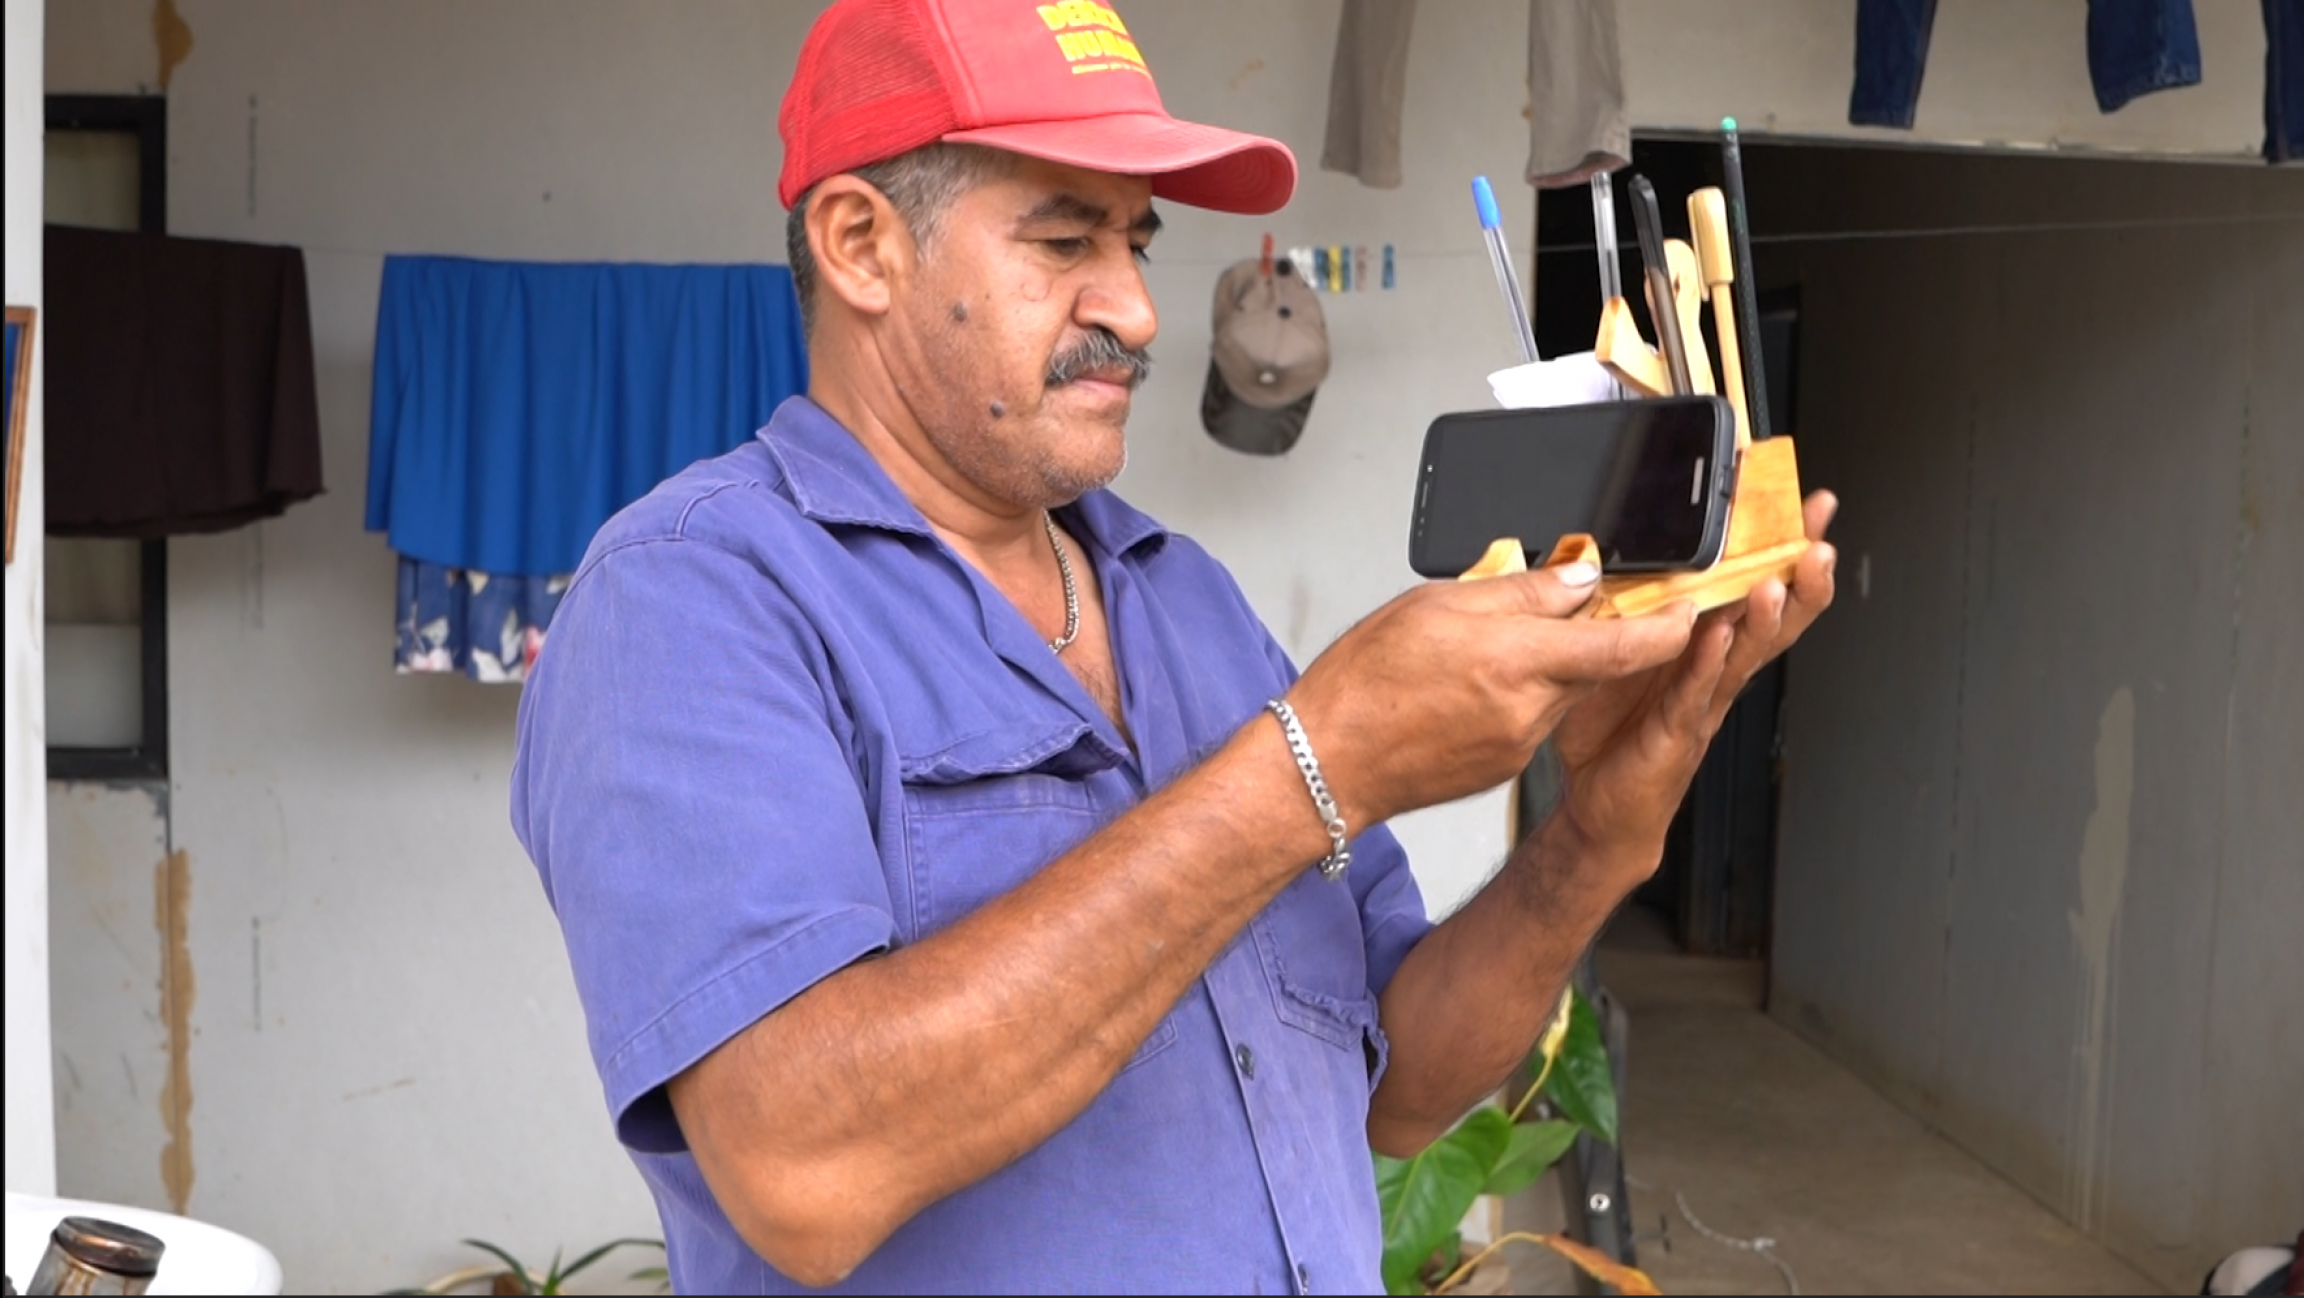 A man shows his pencil holder creation